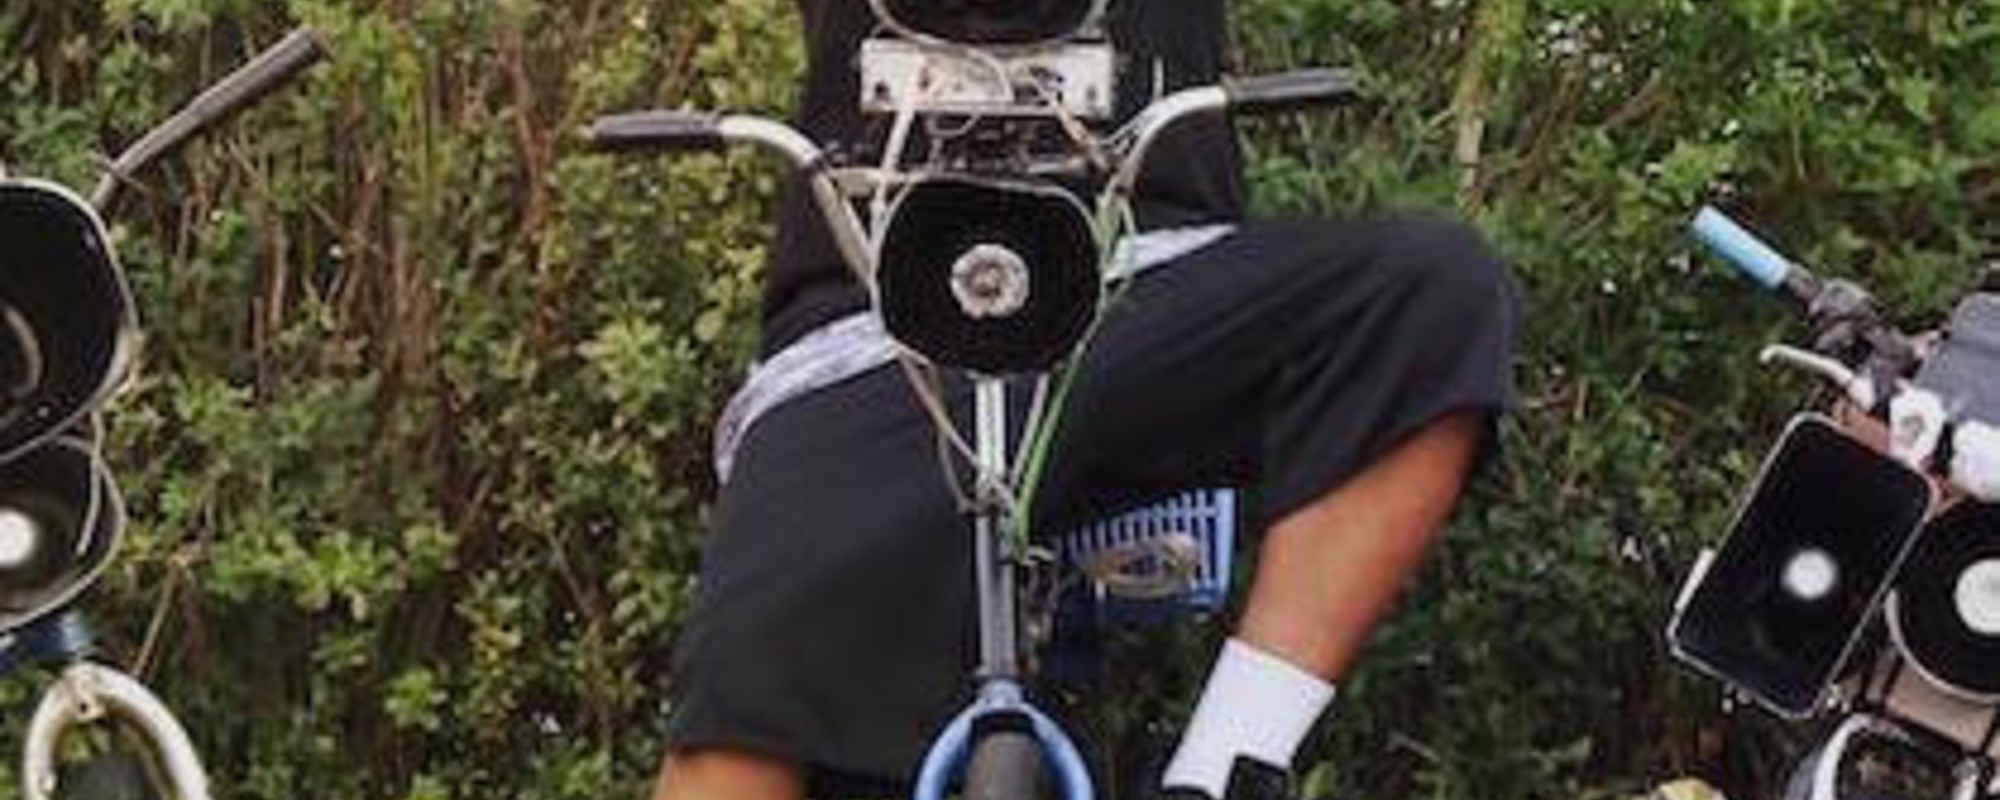 Meet the Auckland Boys Who Blast Celine Dion From Tiny Bikes